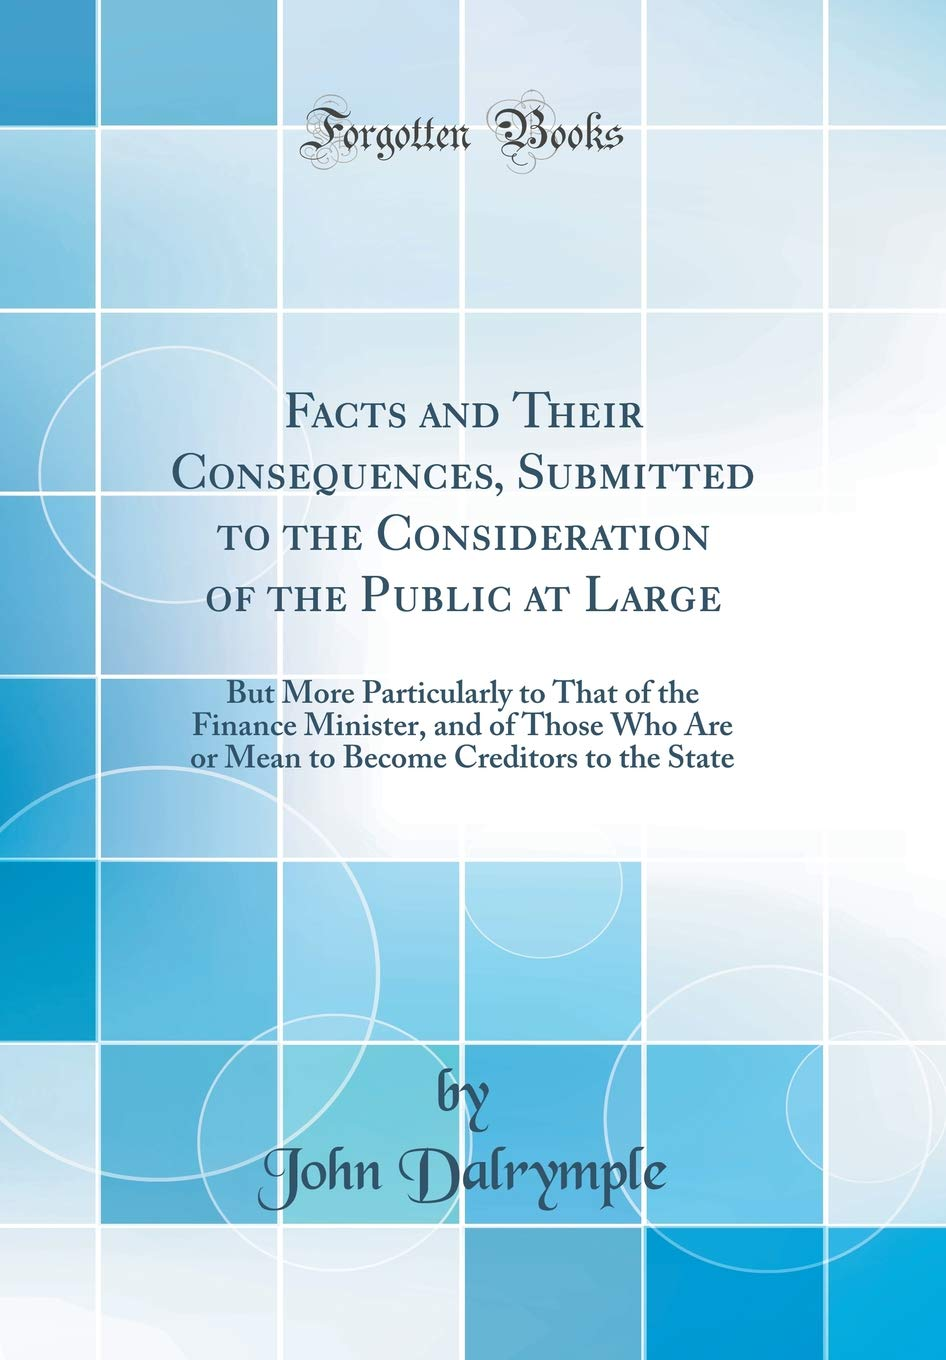 Facts and Their Consequences, Submitted to the Consideration of the